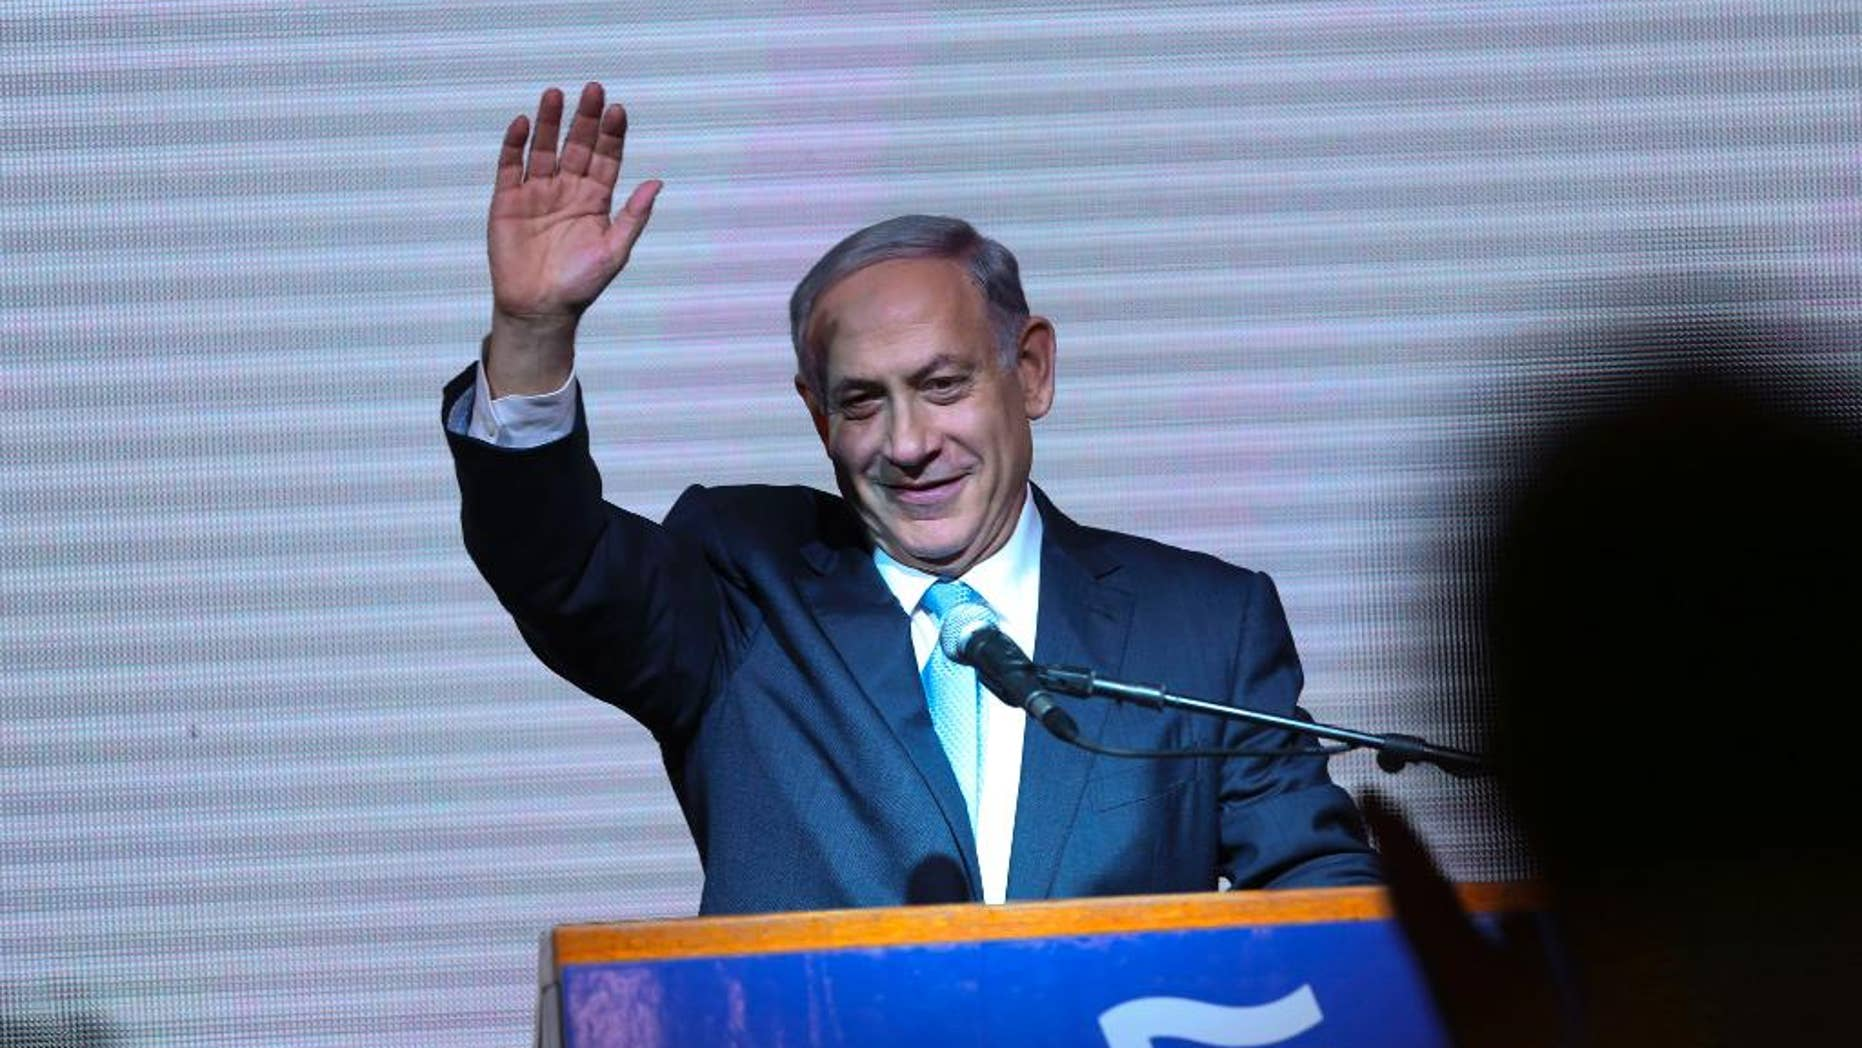 FILE - In this March 18, 2015, file photo, Israeli Prime Minister Benjamin Netanyahu greets supporters at the party's election headquarters in Tel Aviv. Netanyahu apologized to Israel's Arab citizens on Monday, March 23, 2015, for remarks he made during last week's parliament election that offended members of the community. (AP Photo/Oded Balilty, File)